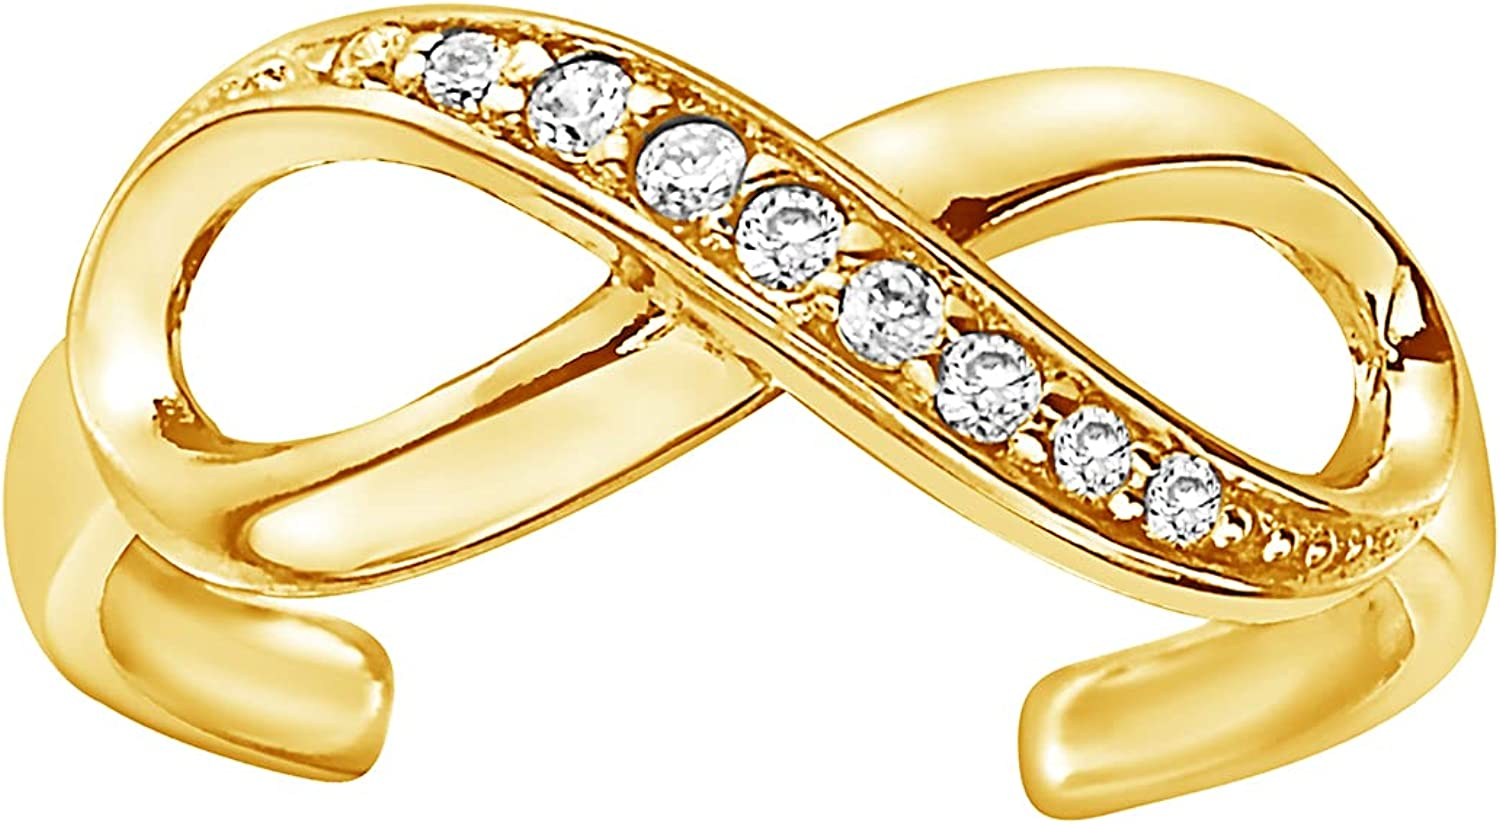 Ritastephens 10k Solid Gold Cubic Zirconia Infinity Adjustable Toe Ring Body Jewelry (Yellow or White)